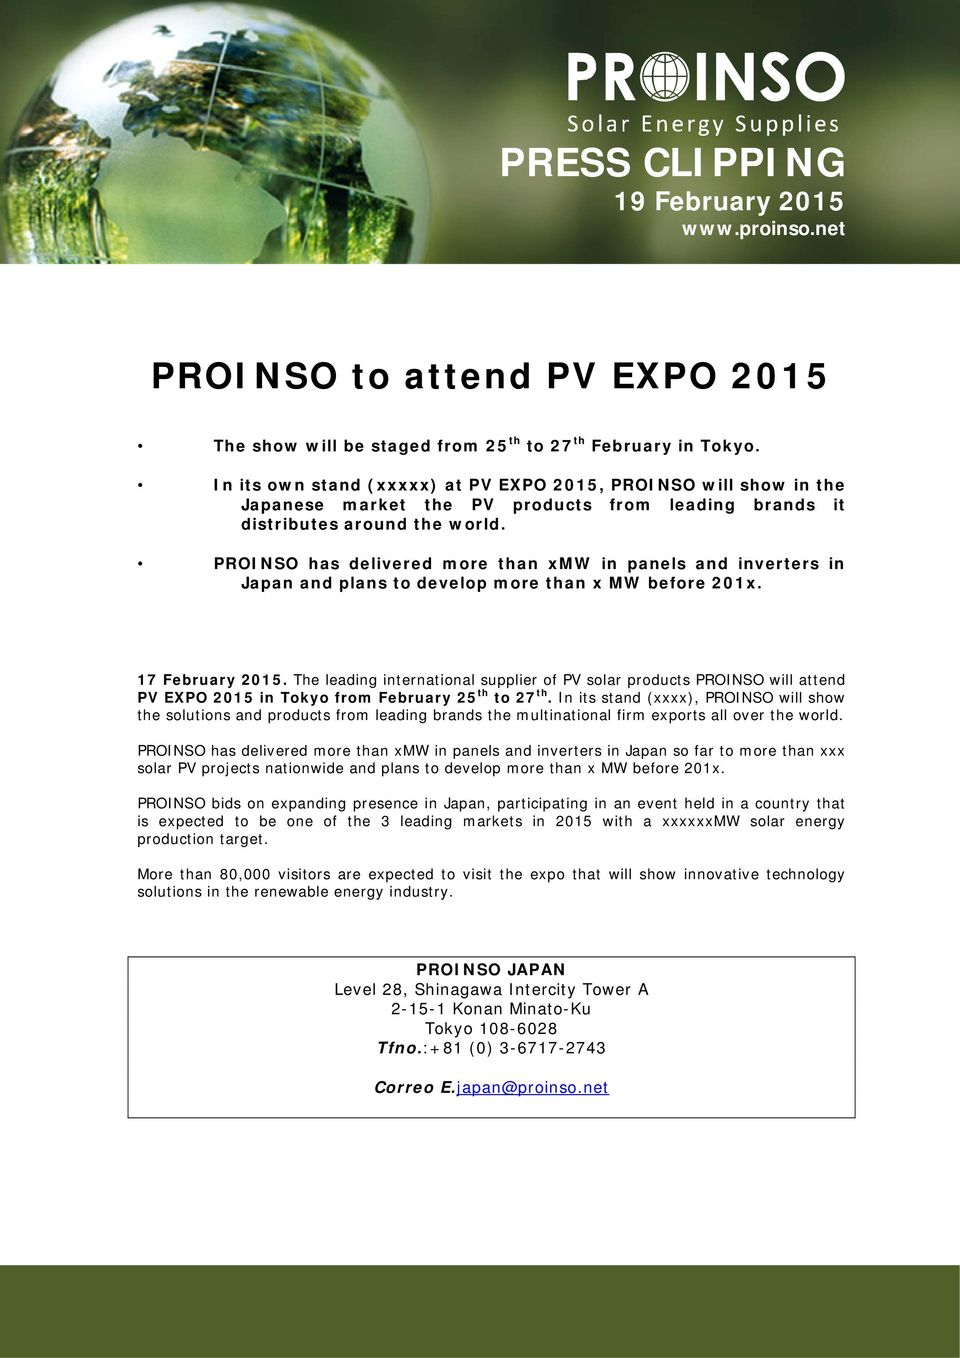 PROINSO has delivered more than xmw in panels and inverters in Japan and plans to develop more than x MW before 201x. 17 February 2015.